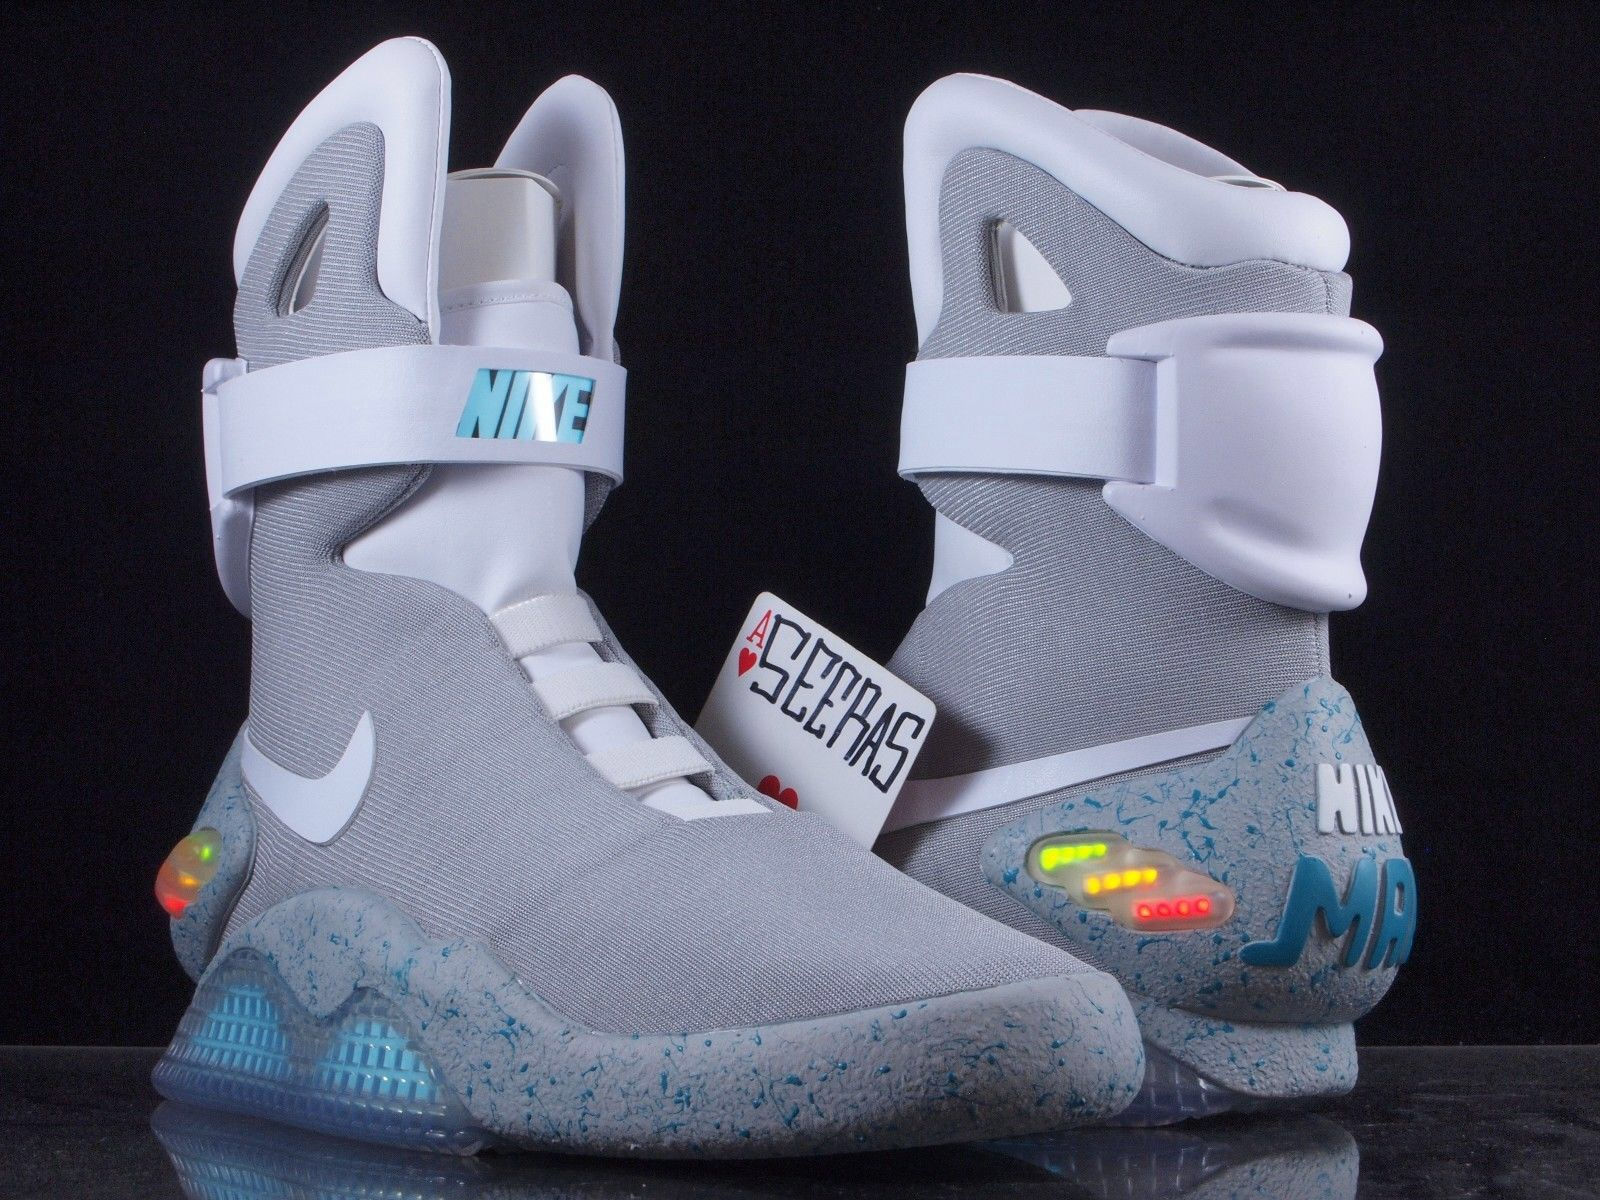 9 Of The Most Expensive Nikes Ever Sold | FashionBeans